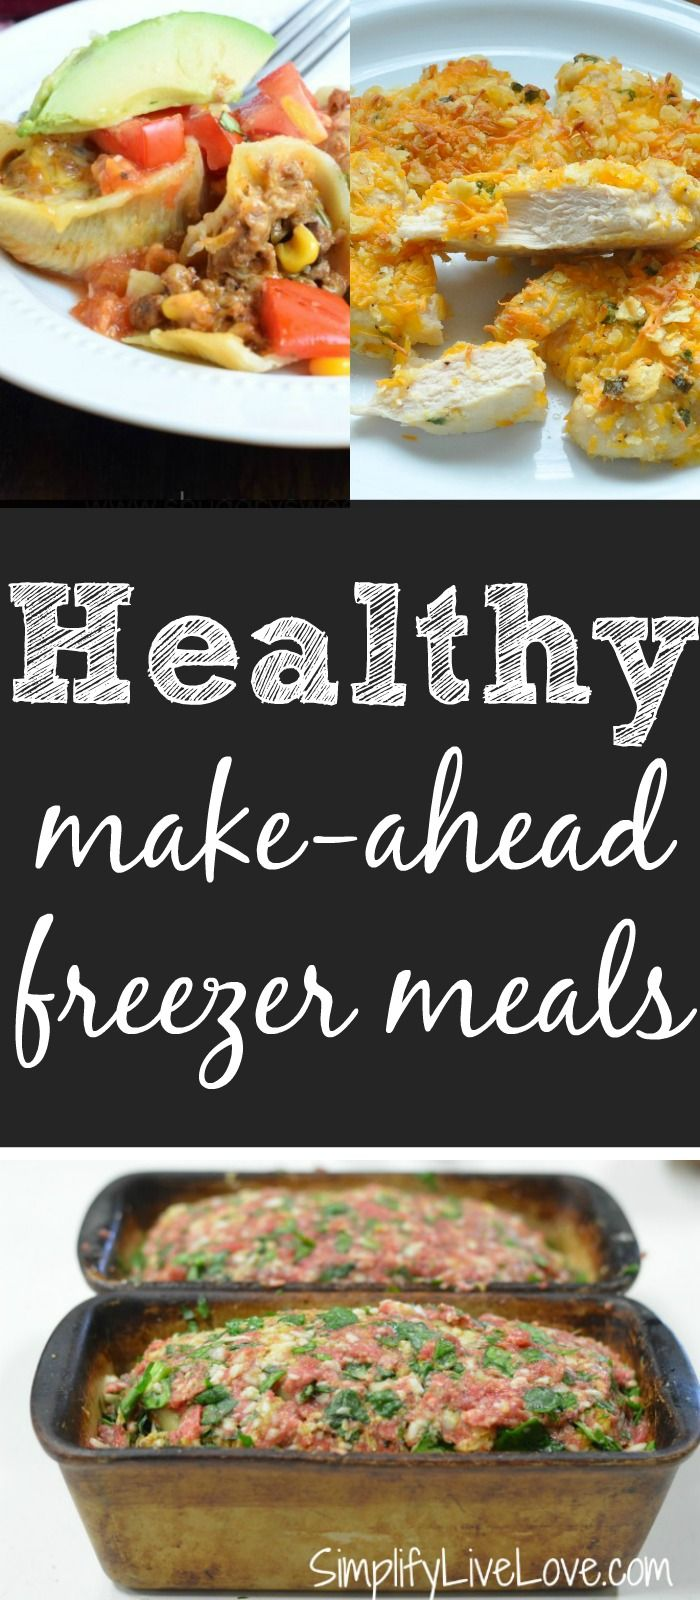 Best 25 healthy freezer meals ideas on pinterest slow cooker healthy make ahead freezer meals forumfinder Gallery